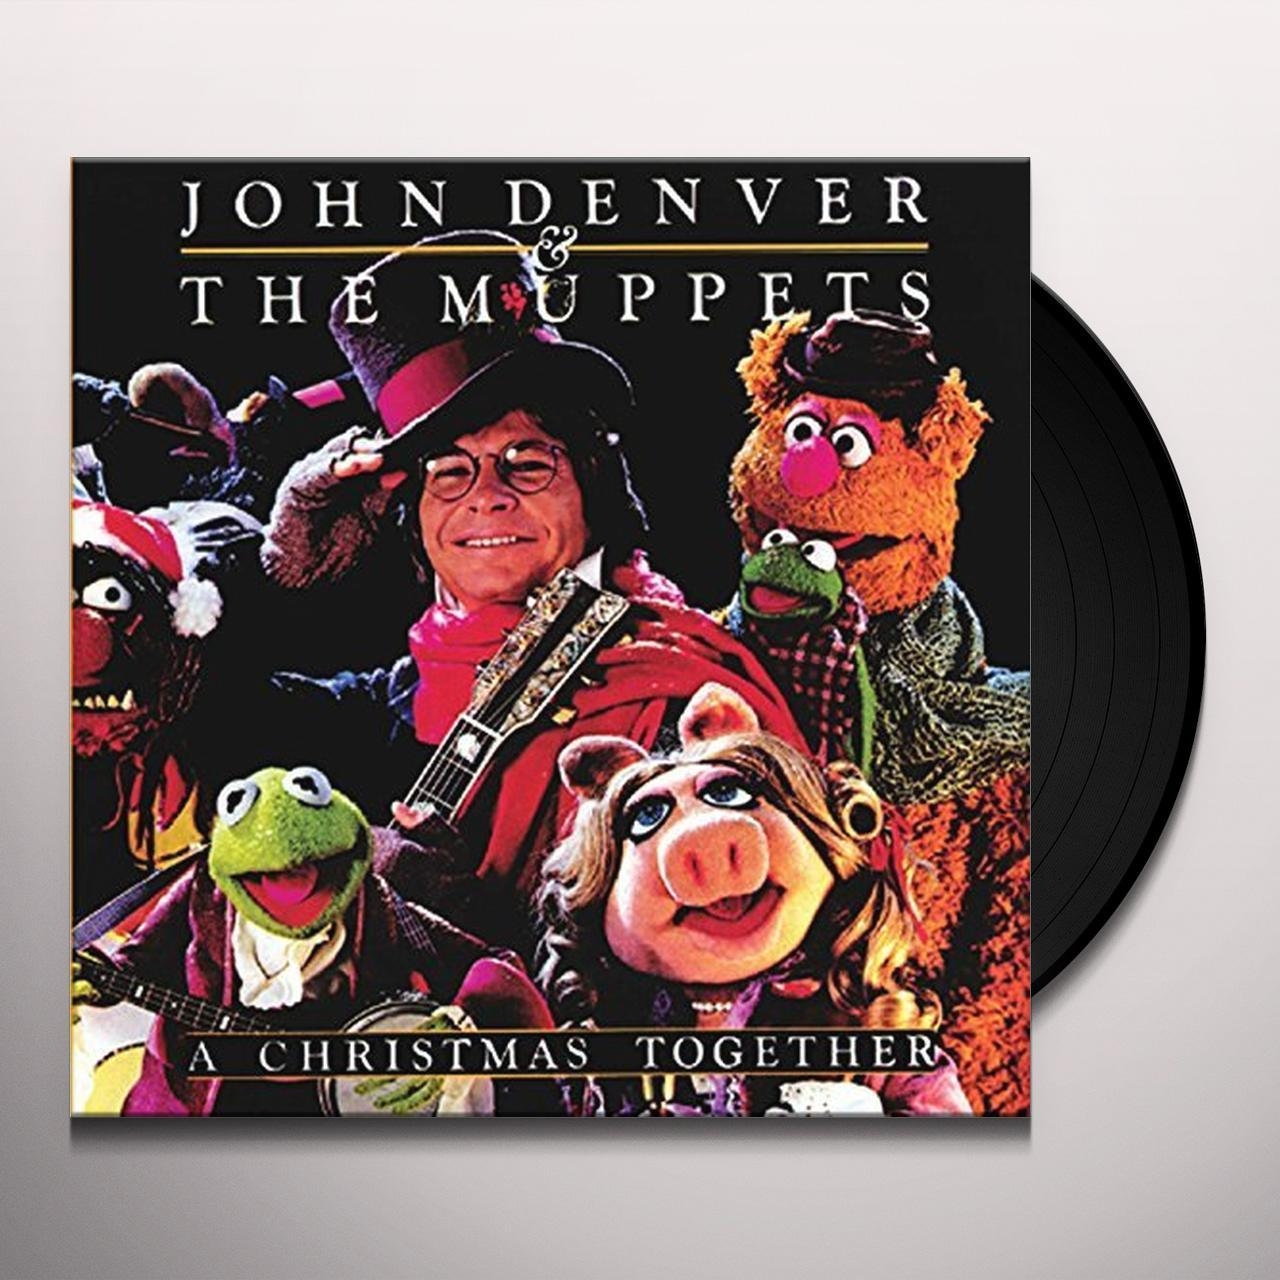 John Denver & The Muppets CHRISTMAS TOGETHER Vinyl Record